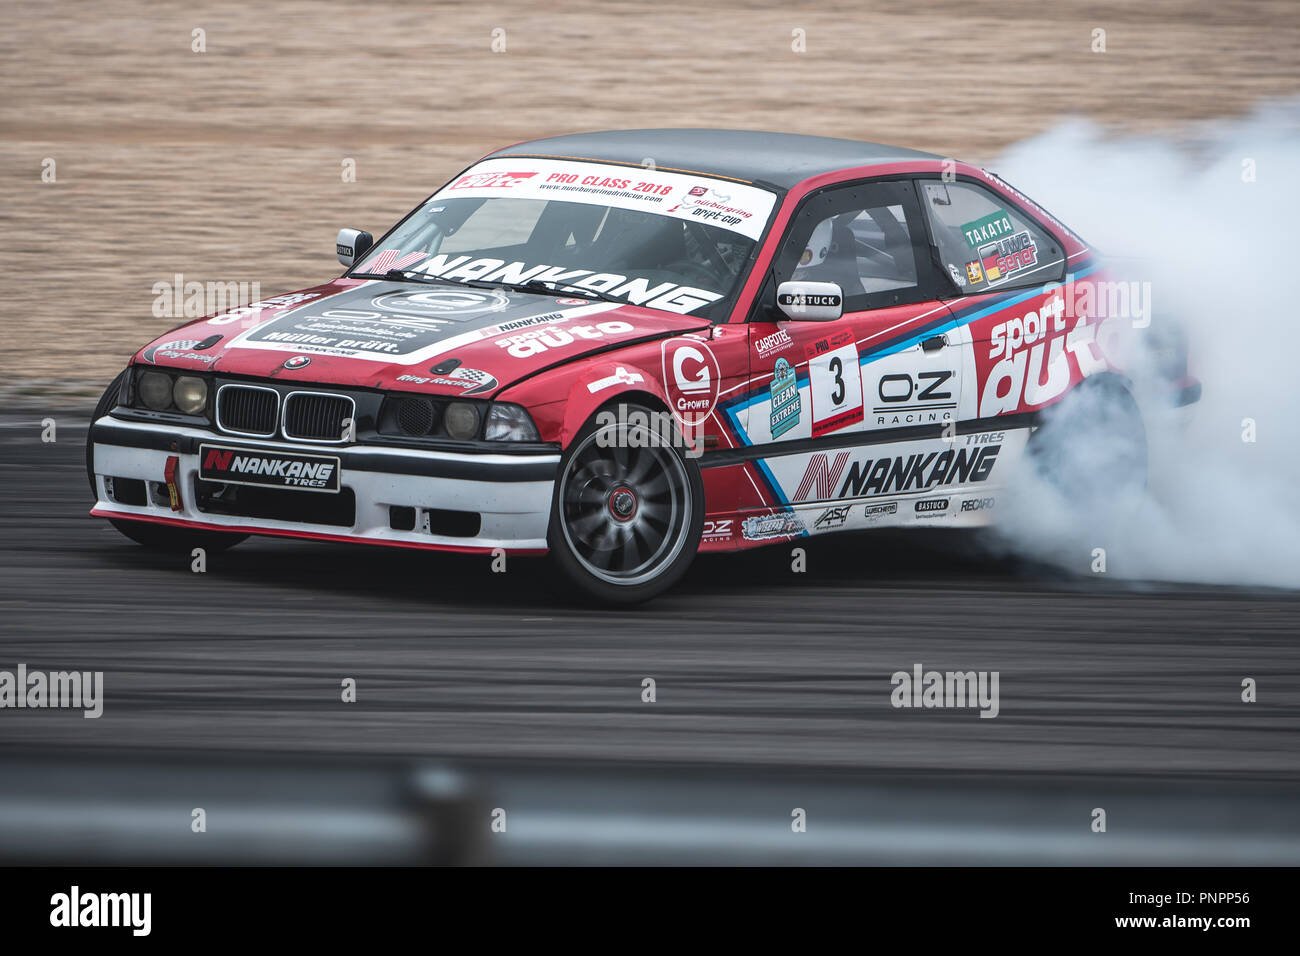 hight resolution of 22 september 2018 rhineland palatinate nuerburg motorsport nuerburgring drift cup uwe sener in action with his bmw e36 m3 during the drift cup